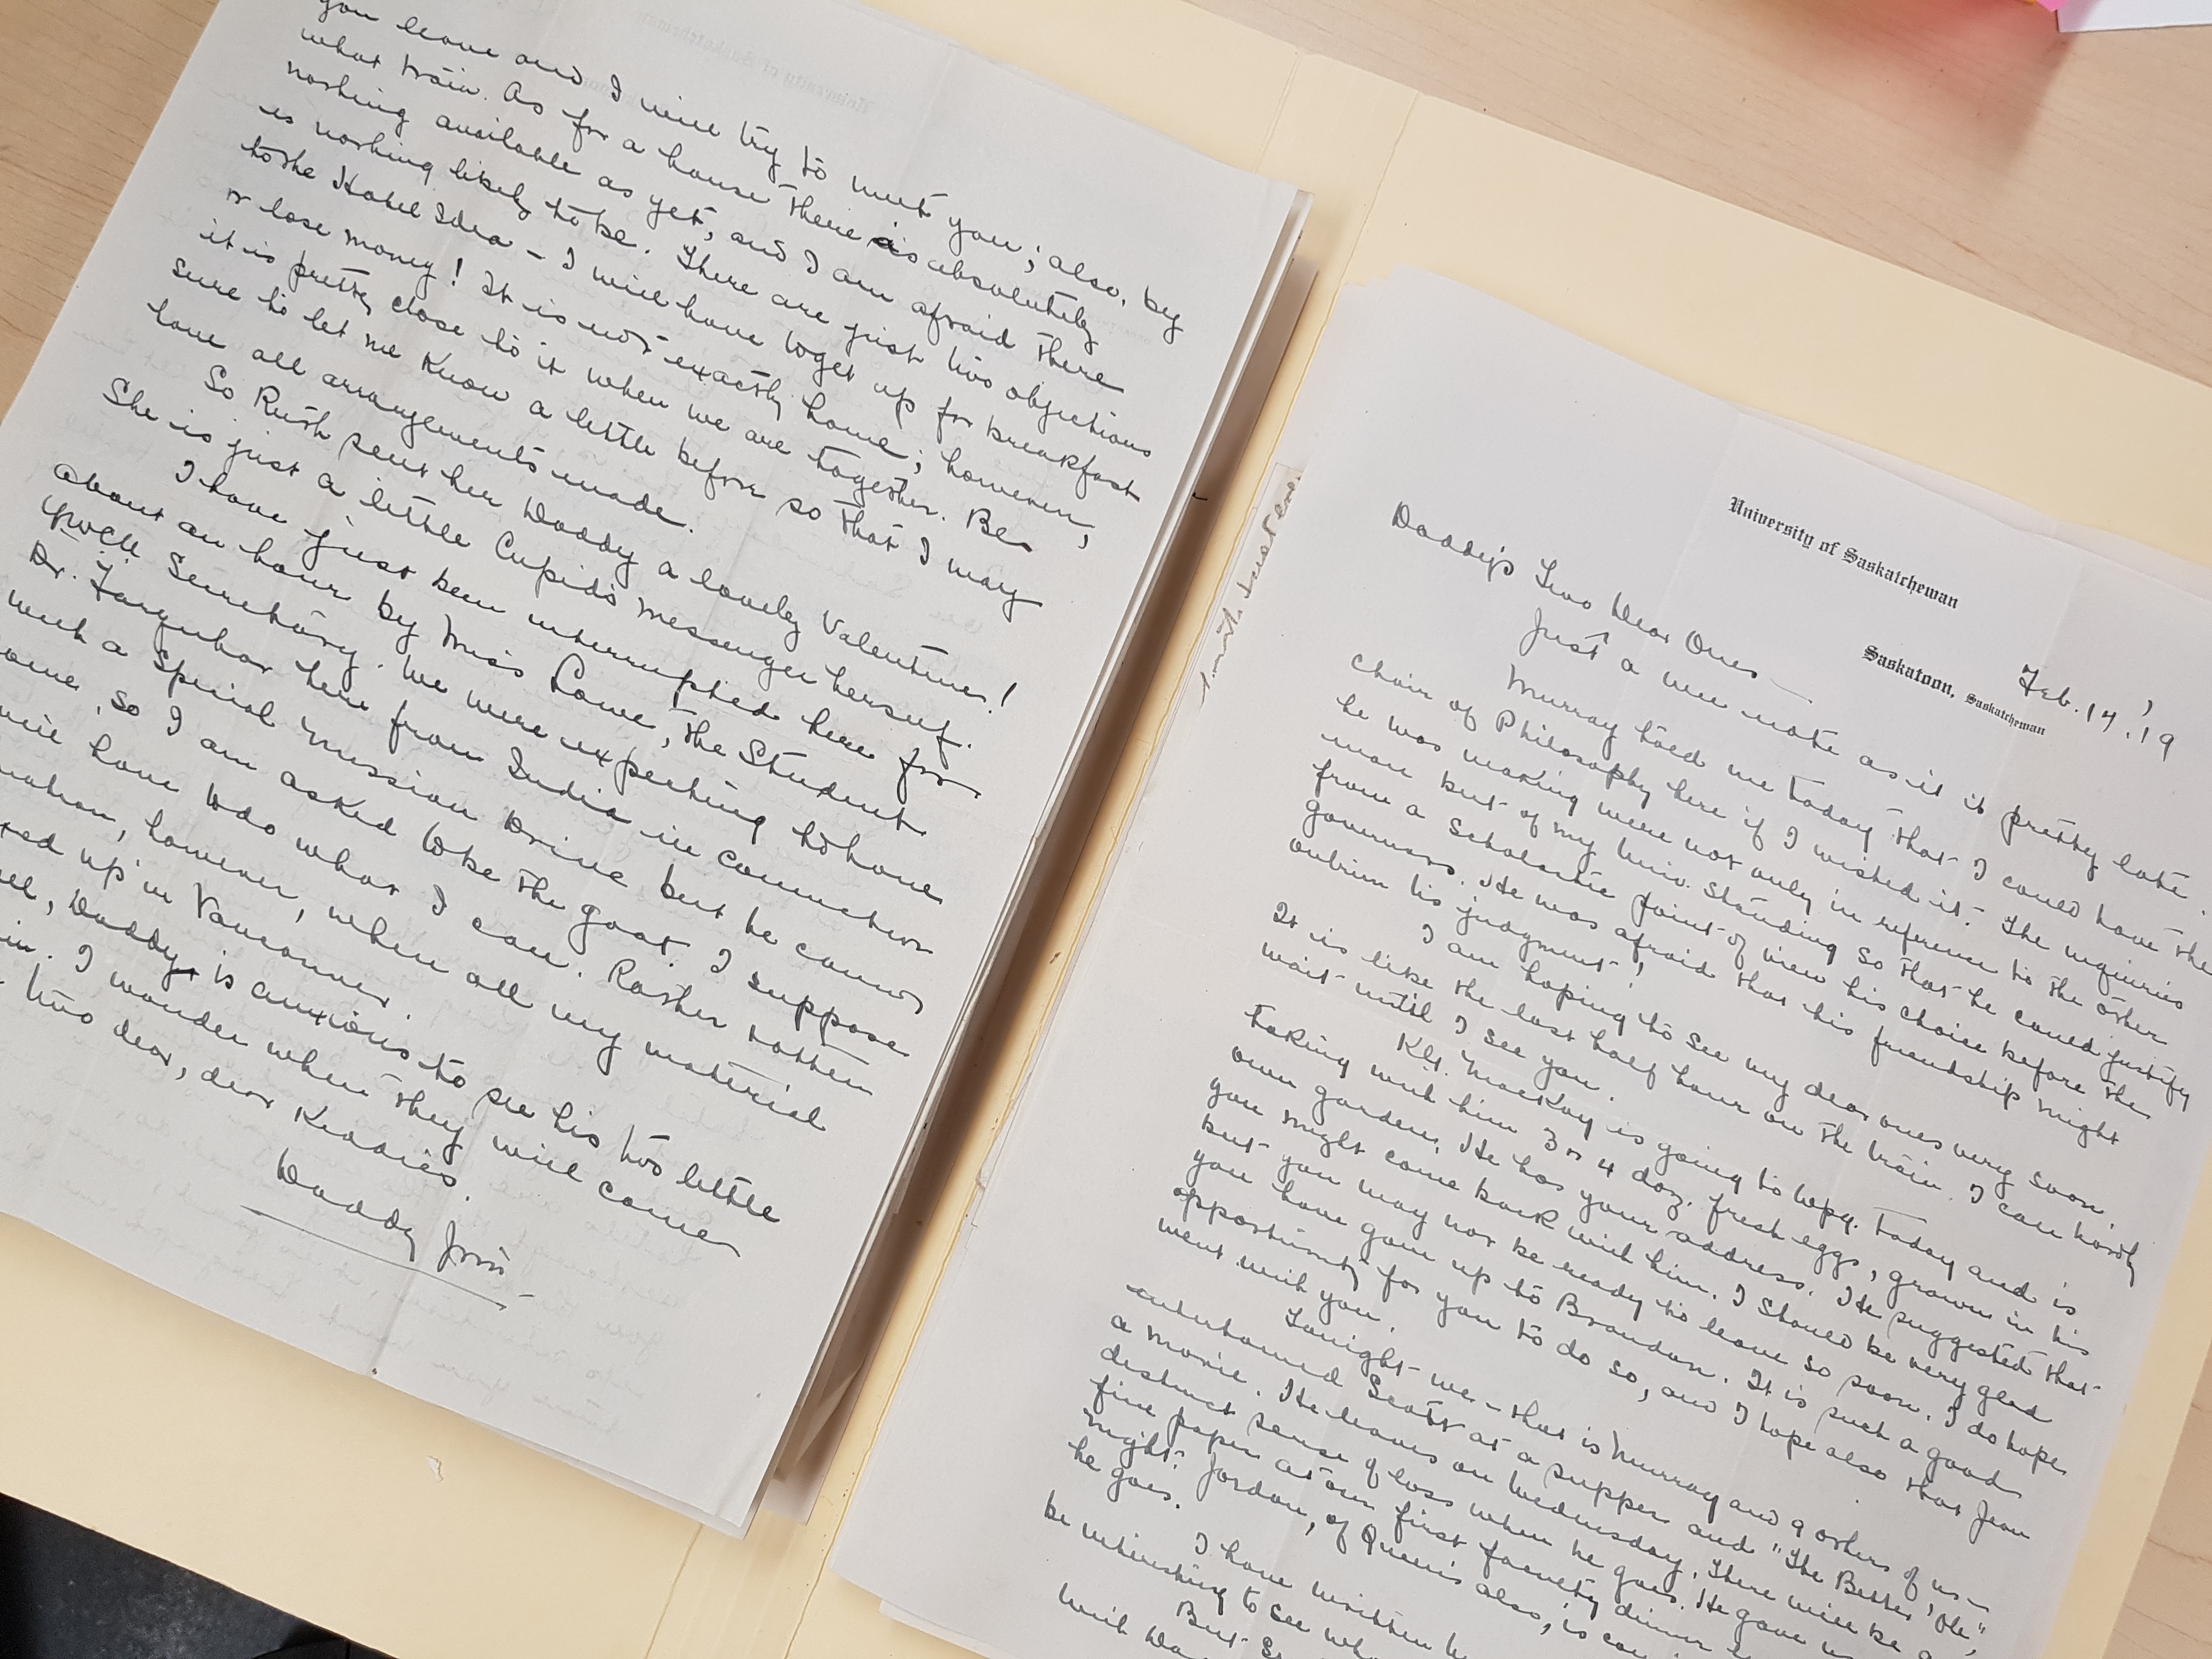 Photograph of handwritten documents inside a manila folder.